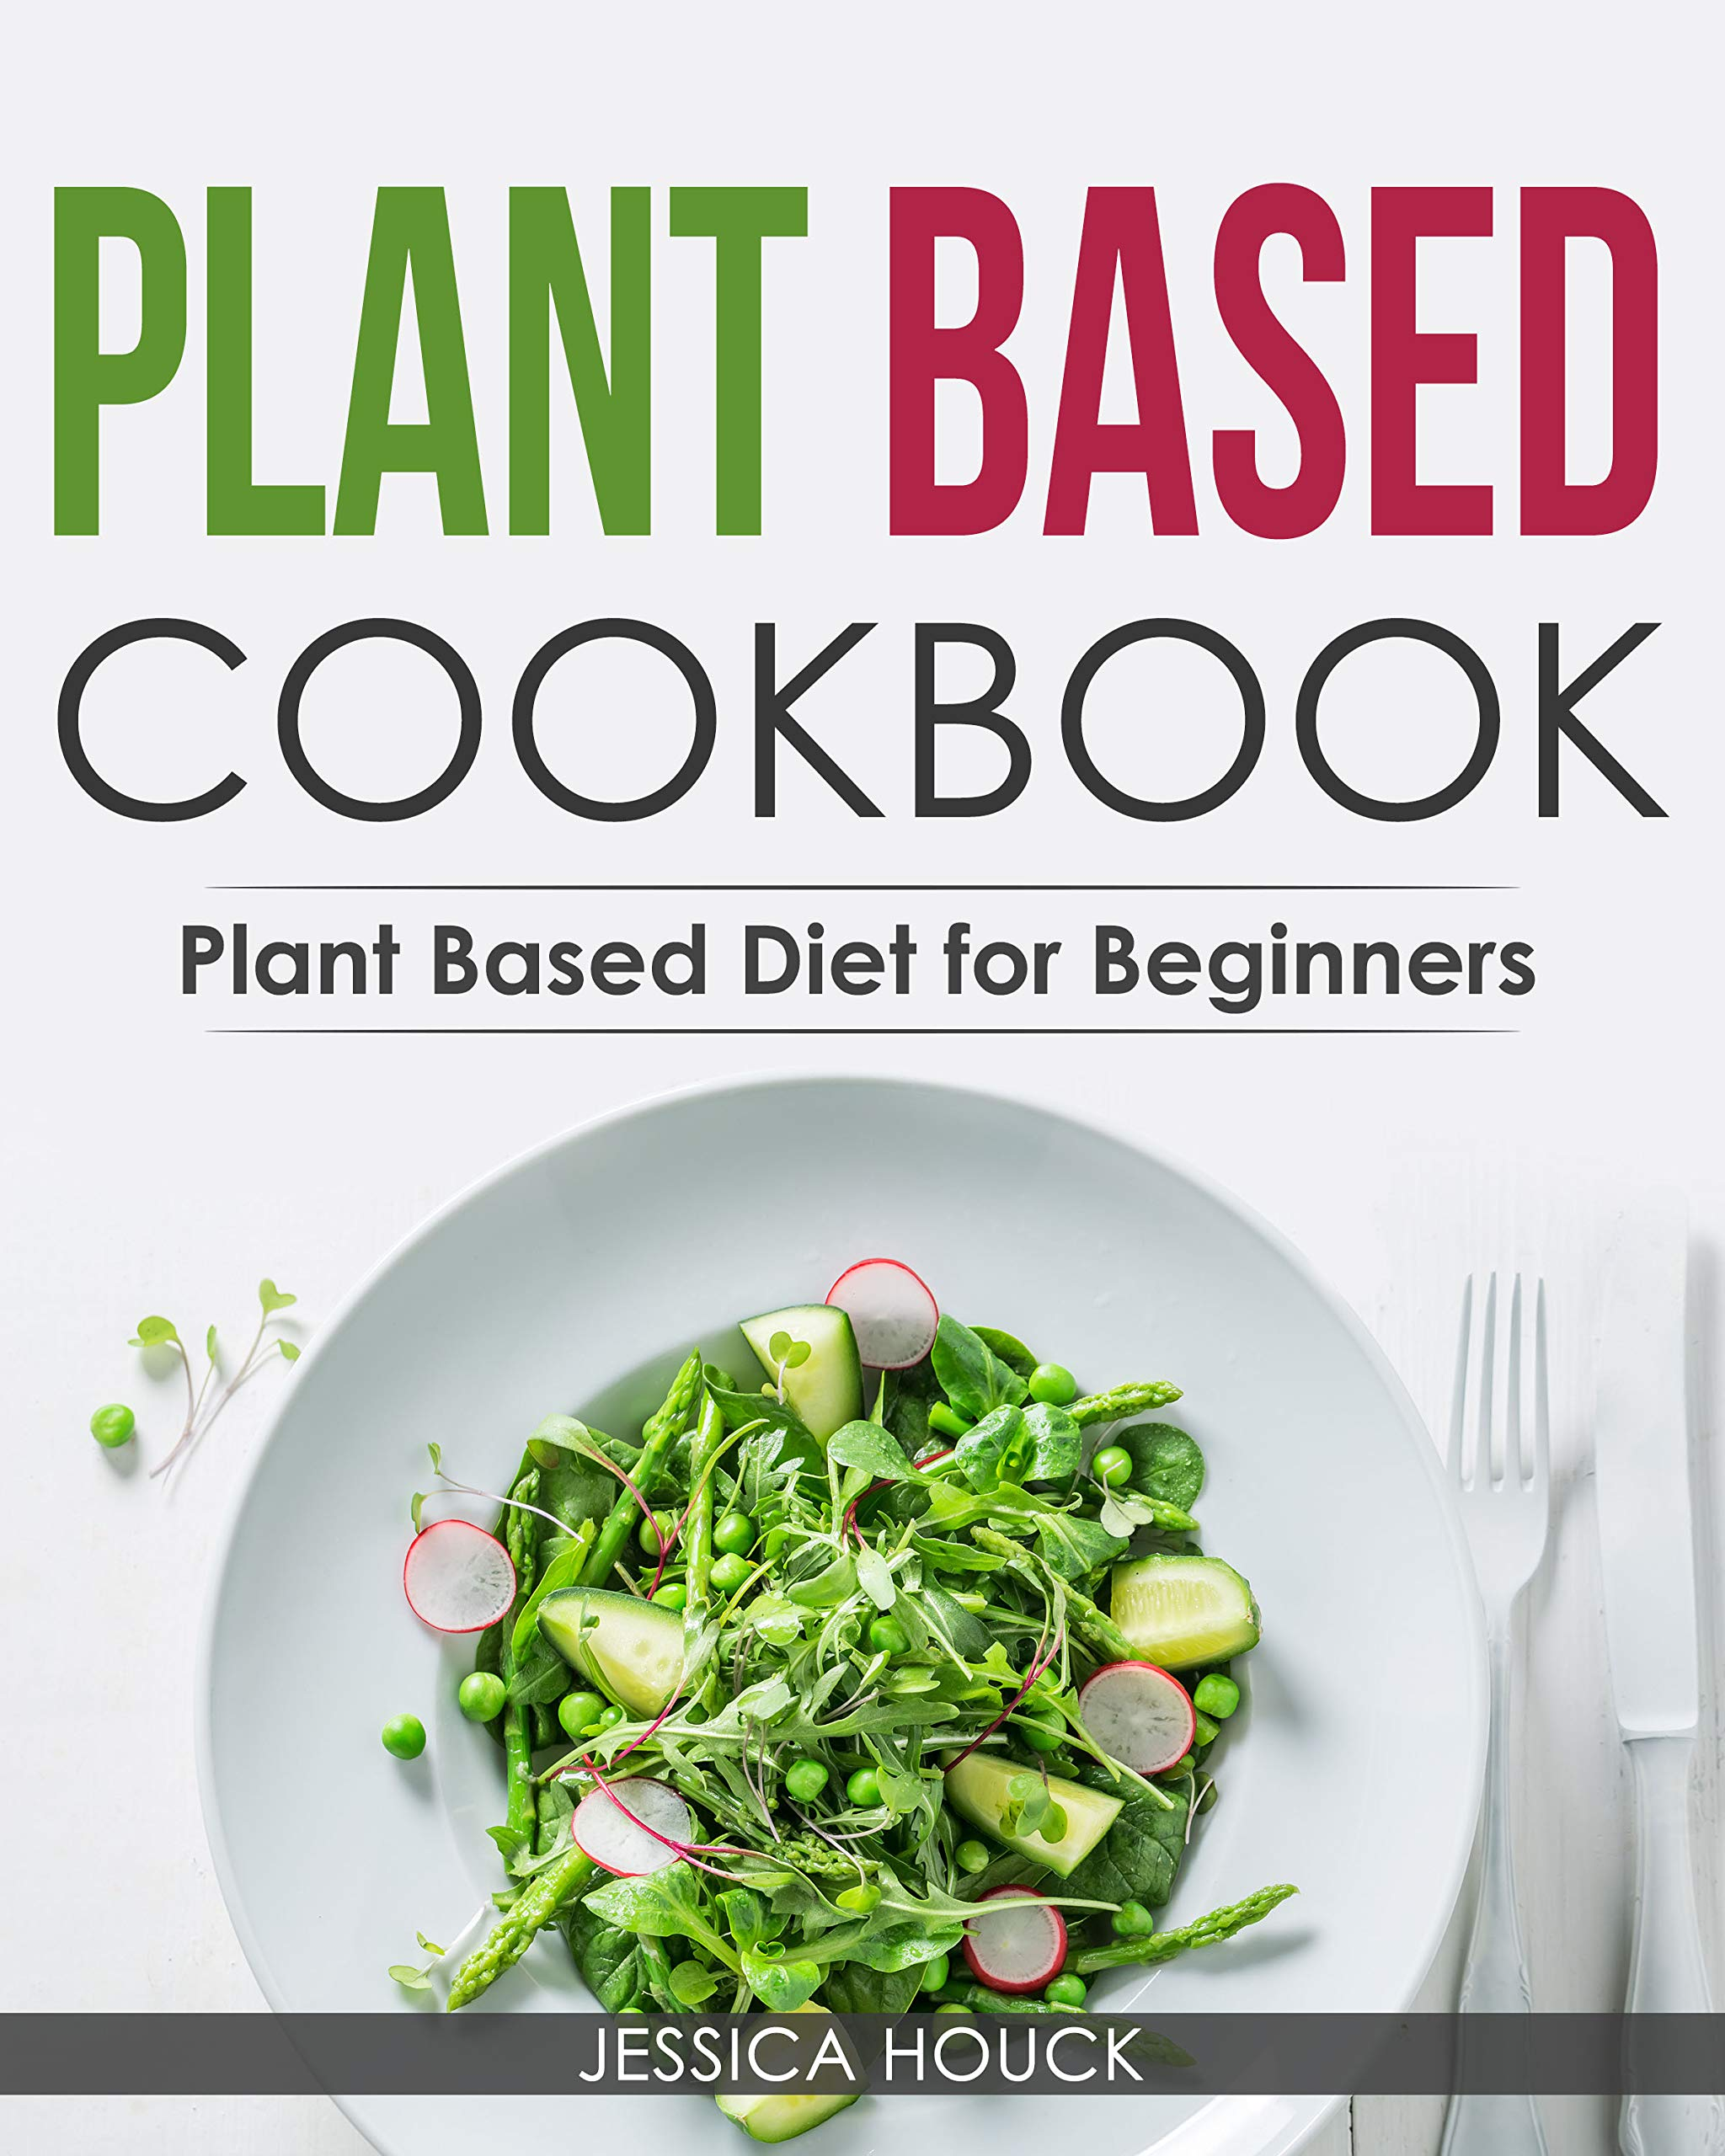 Plant Based Cookbook: Plant Based Diet for Beginners: Quick and Easy Vegan Cookbook for Beginners: Simple Vegetarian Cookbook for Everyone (Plant-Based ... Vegetarian Cookbooks 2) (English Edition)